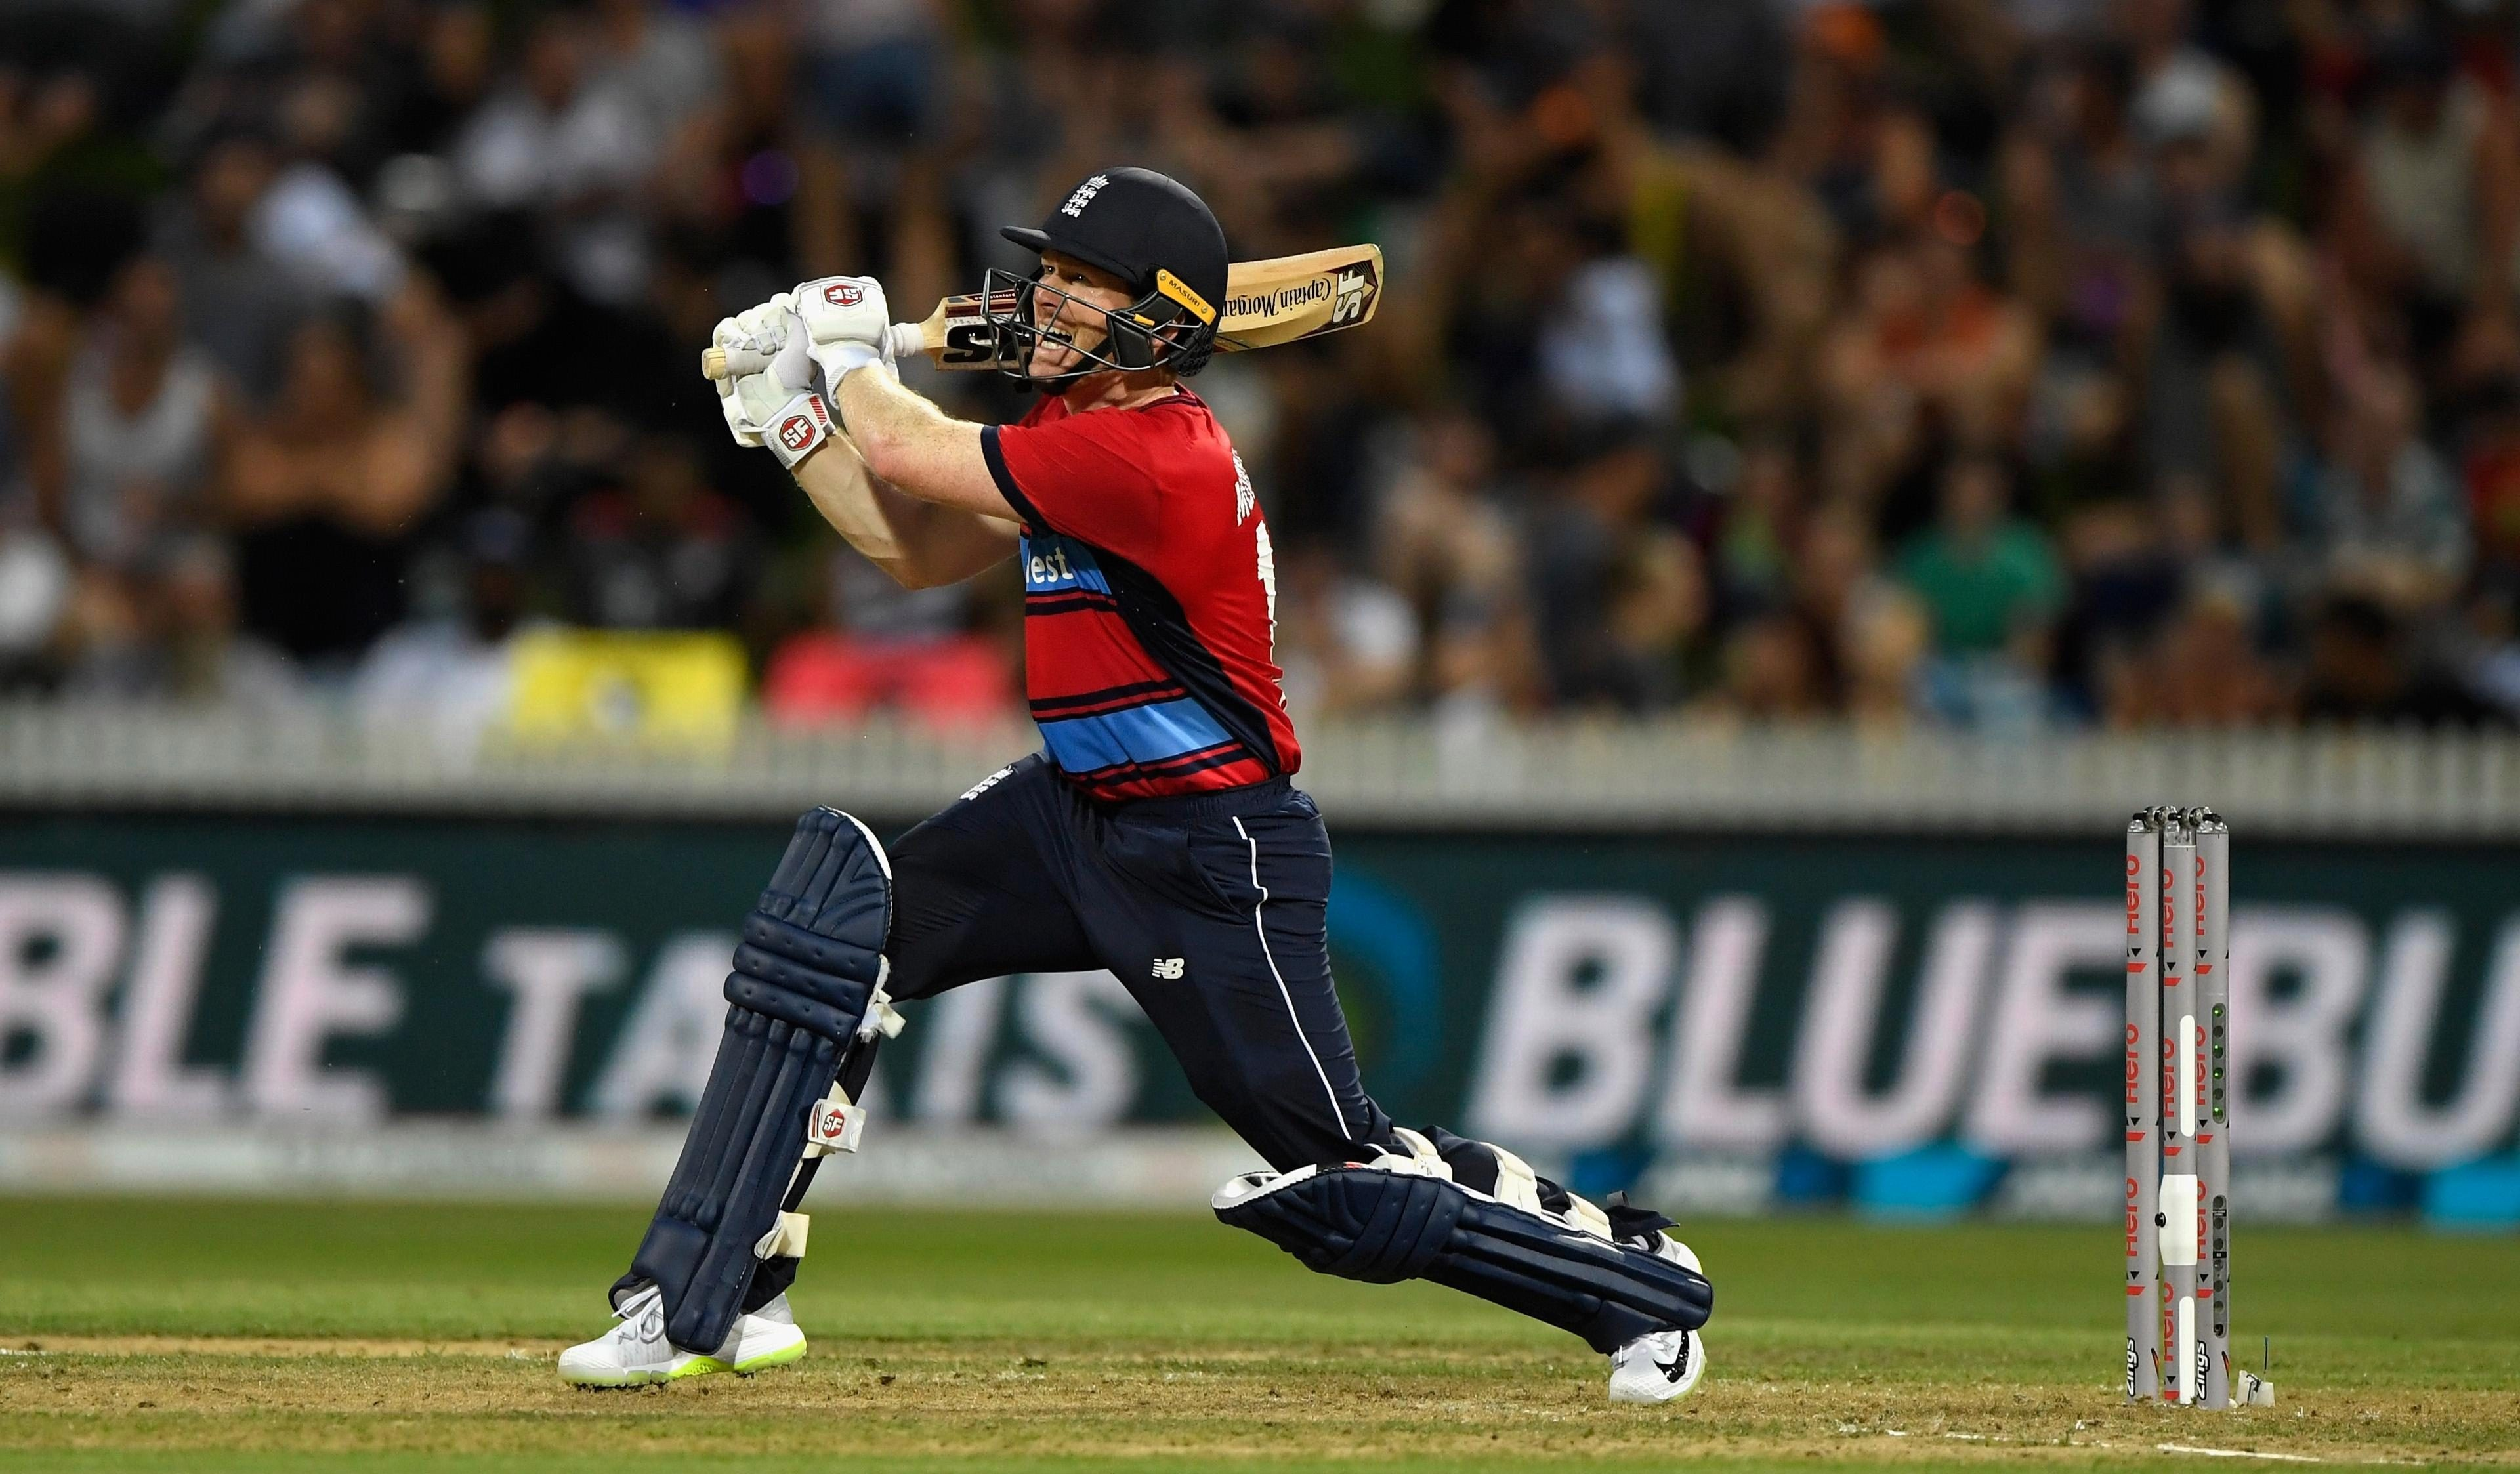 Eoin Morgan's 80 not out was not enough for England in New Zealand